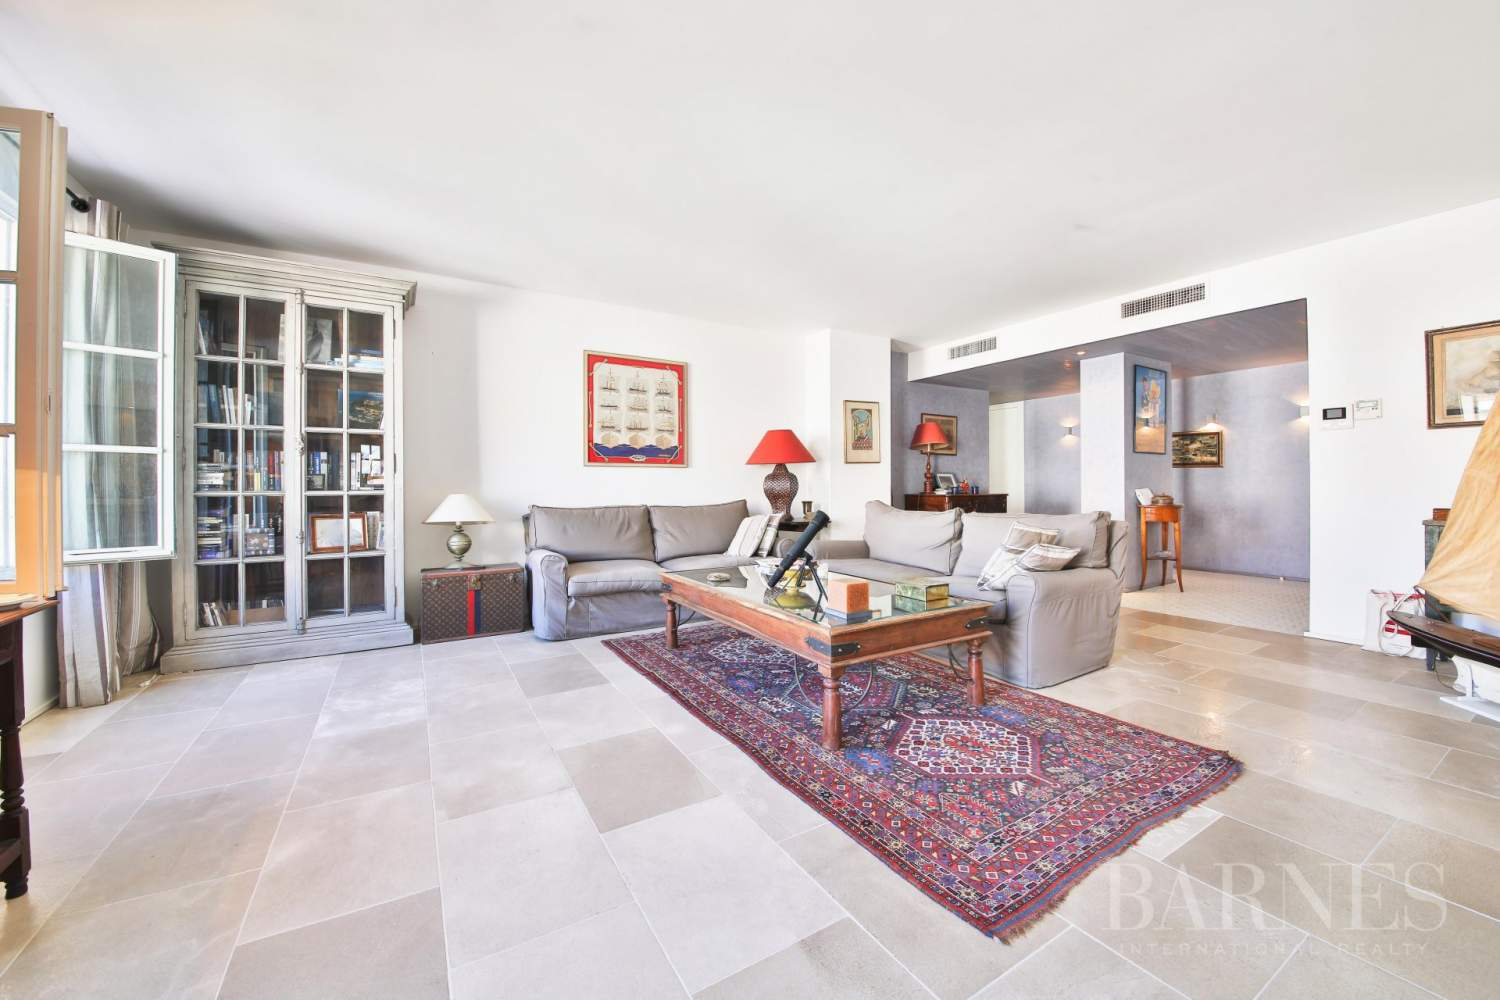 SAINT-TROPEZ - Modern apartment in the heart of village picture 2